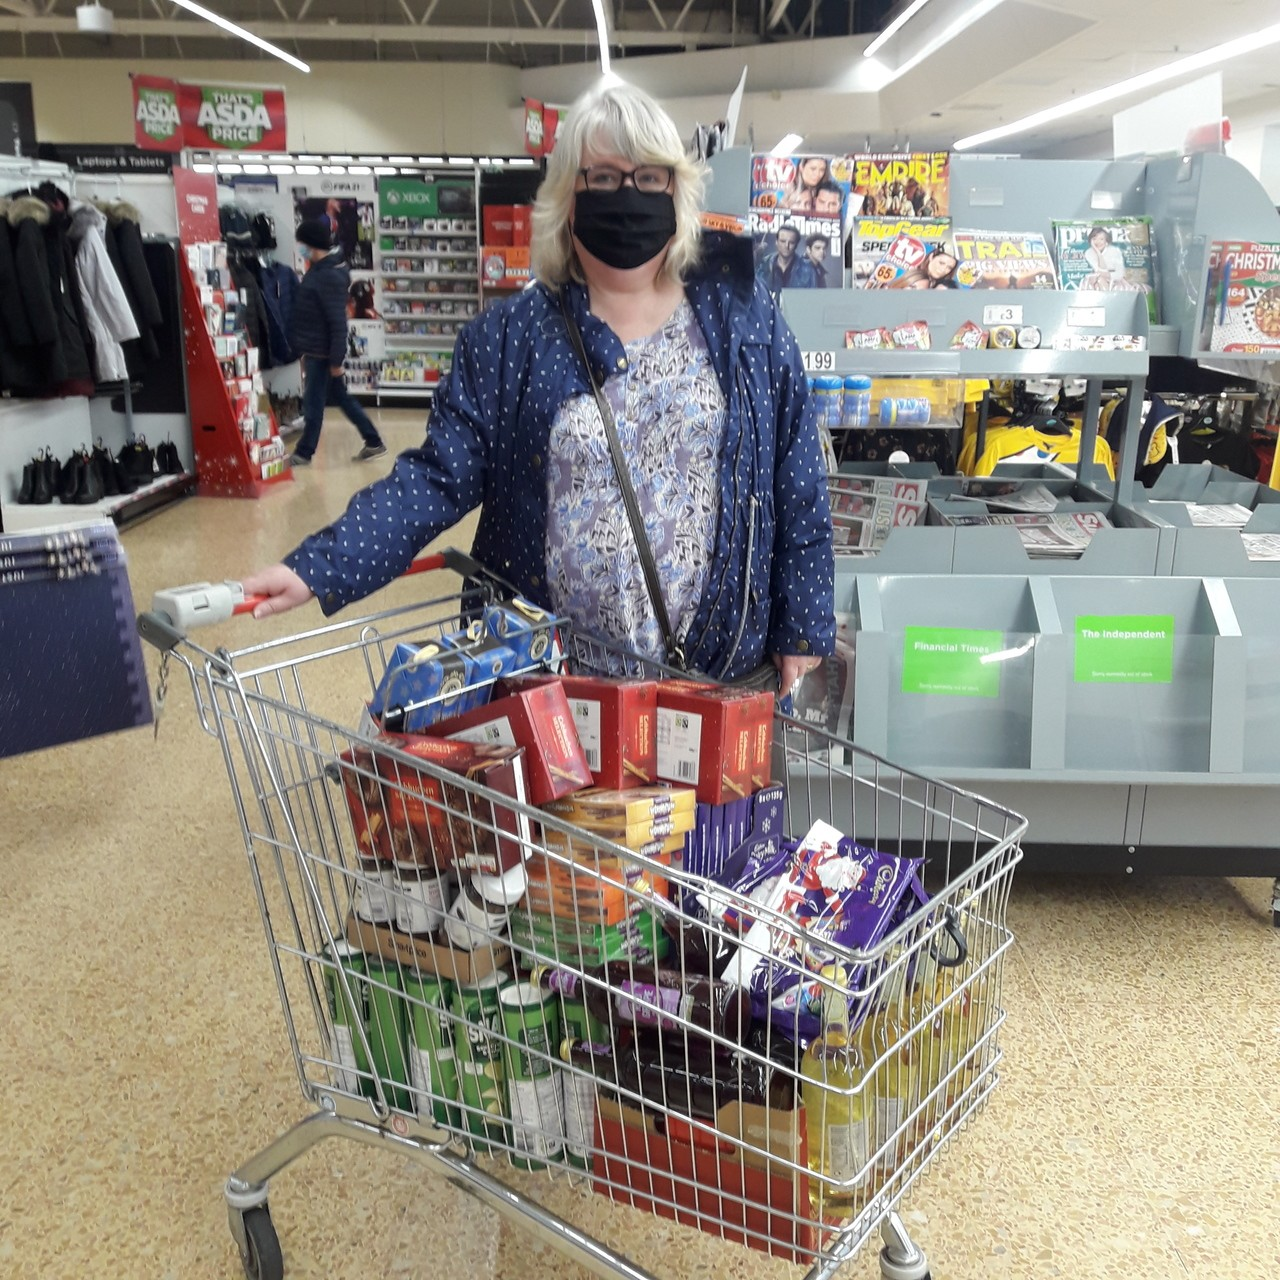 CAP (Christian's Against Poverty) donation | Asda Crewe